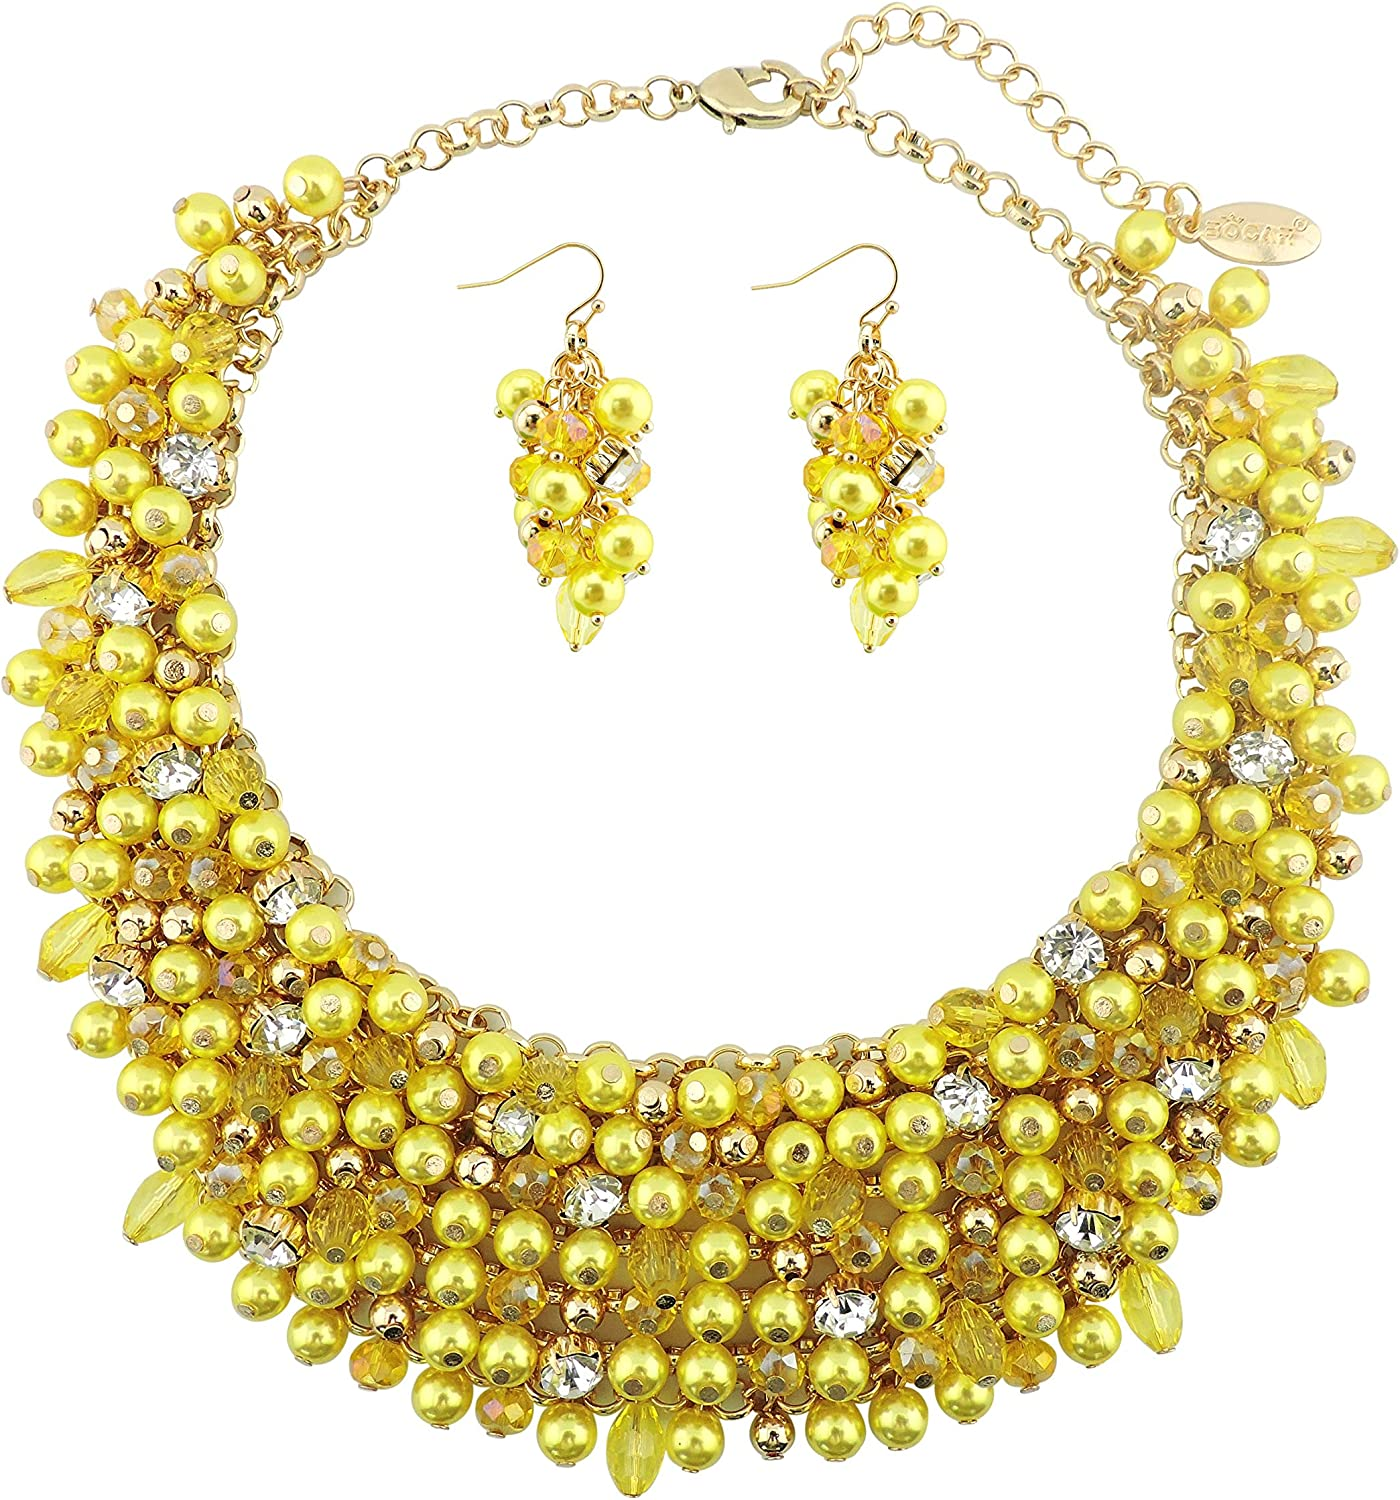 Bocar Fashion Crystal Chunky Collar Statement Necklace Earring Set for Women Gift (NK-10260)